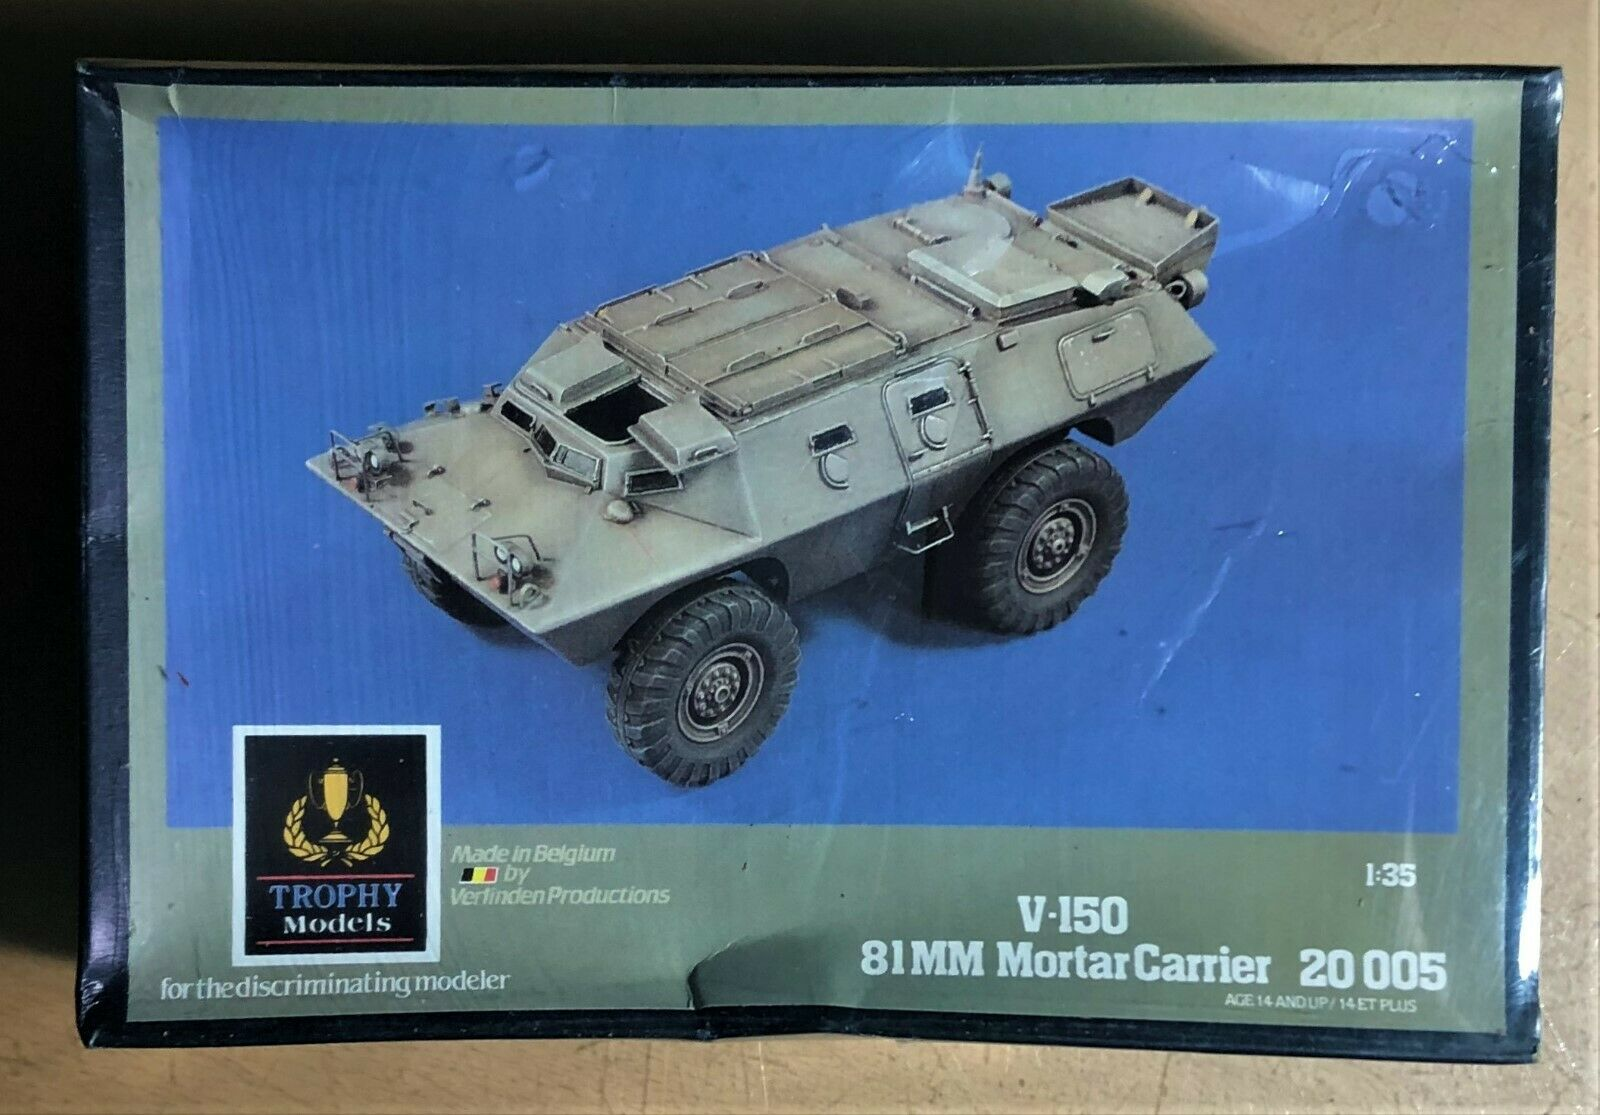 TROPHY MODELS (VERLINDEN) 20005 - V-150 81mm MORTAR CARRIER - 1 35 RESIN KIT